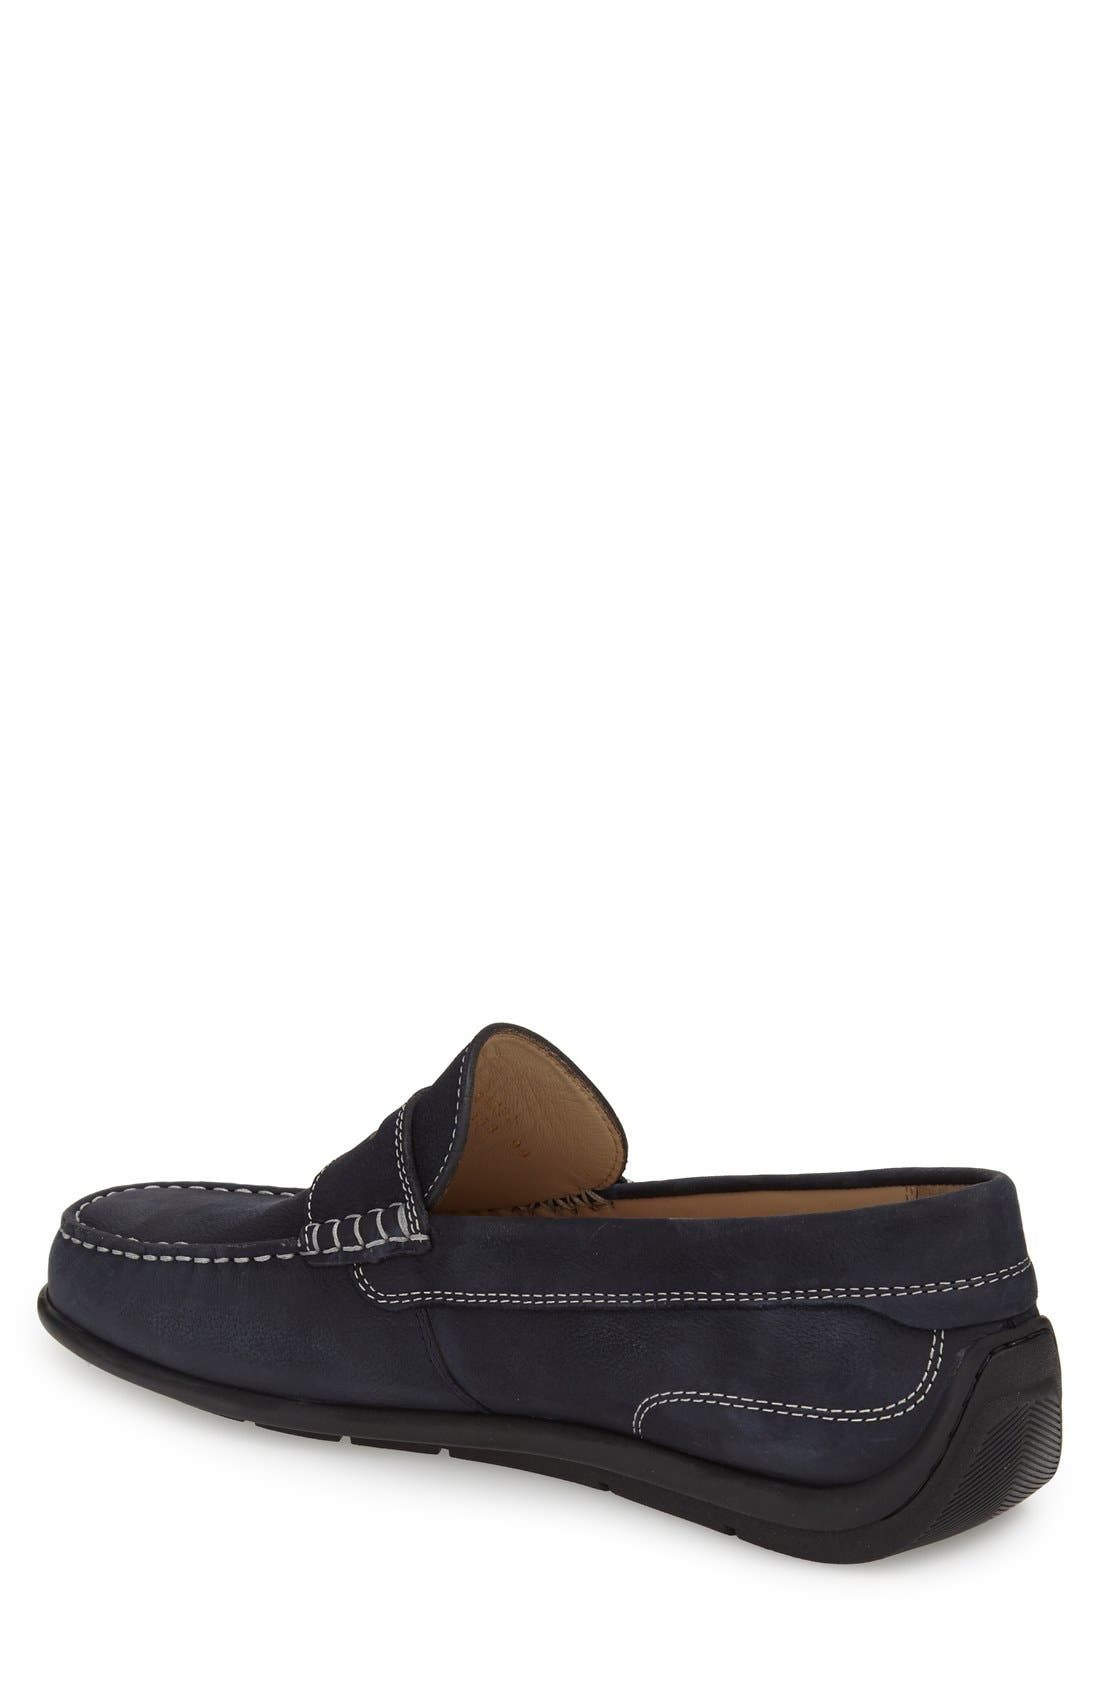 'Classic Moc 2.0' Penny Loafer,                             Alternate thumbnail 2, color,                             Navy Leather